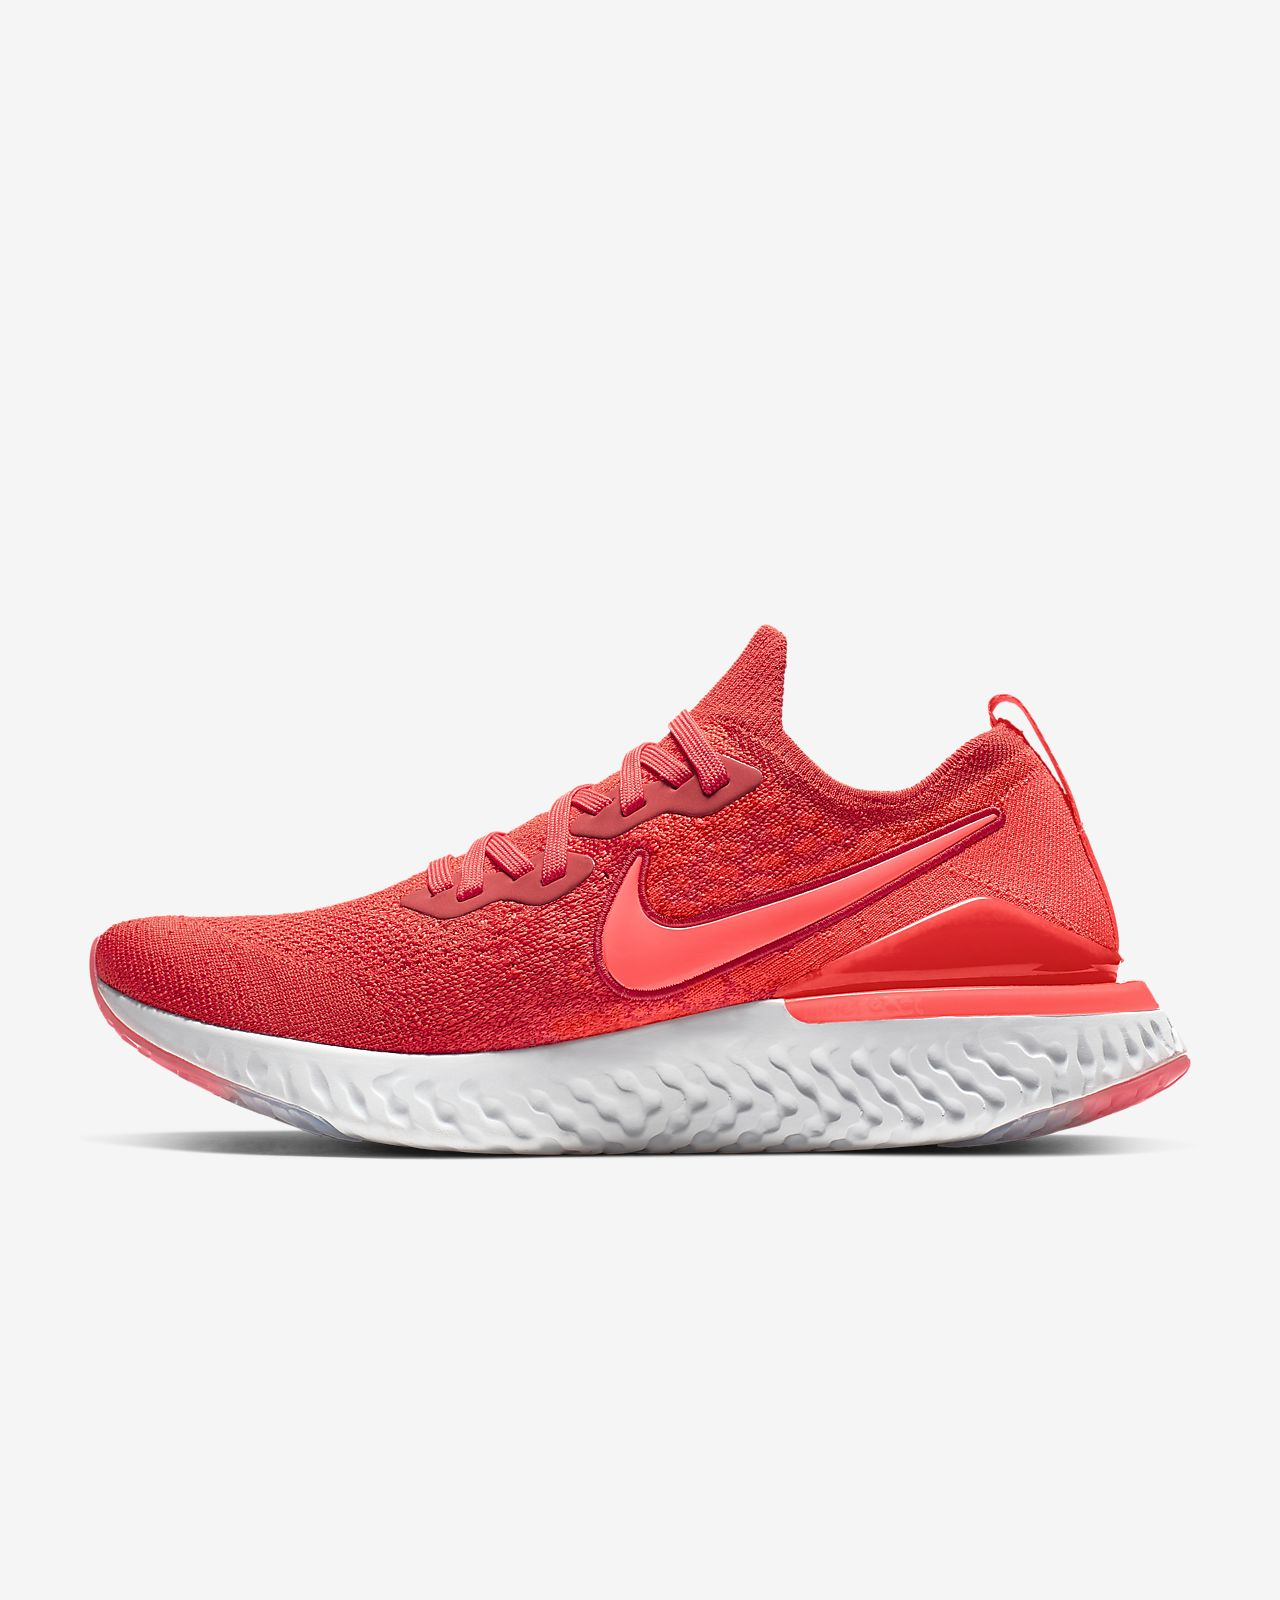 4954113a55b45 Nike Epic React Flyknit 2 Men s Running Shoe. Nike.com LU